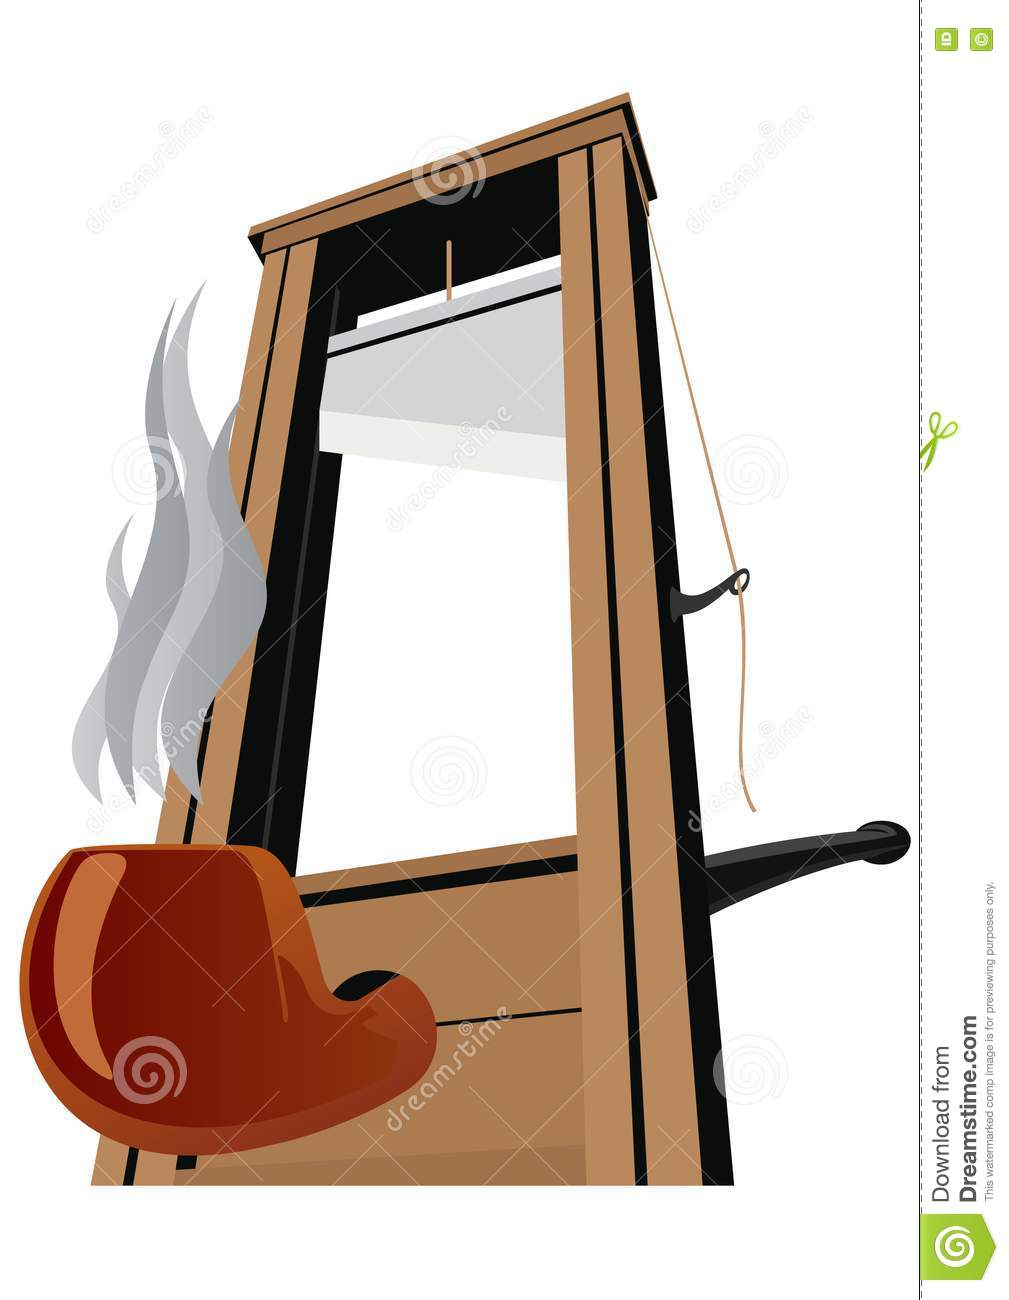 the guillotine and the pipe royalty free stock images. Black Bedroom Furniture Sets. Home Design Ideas